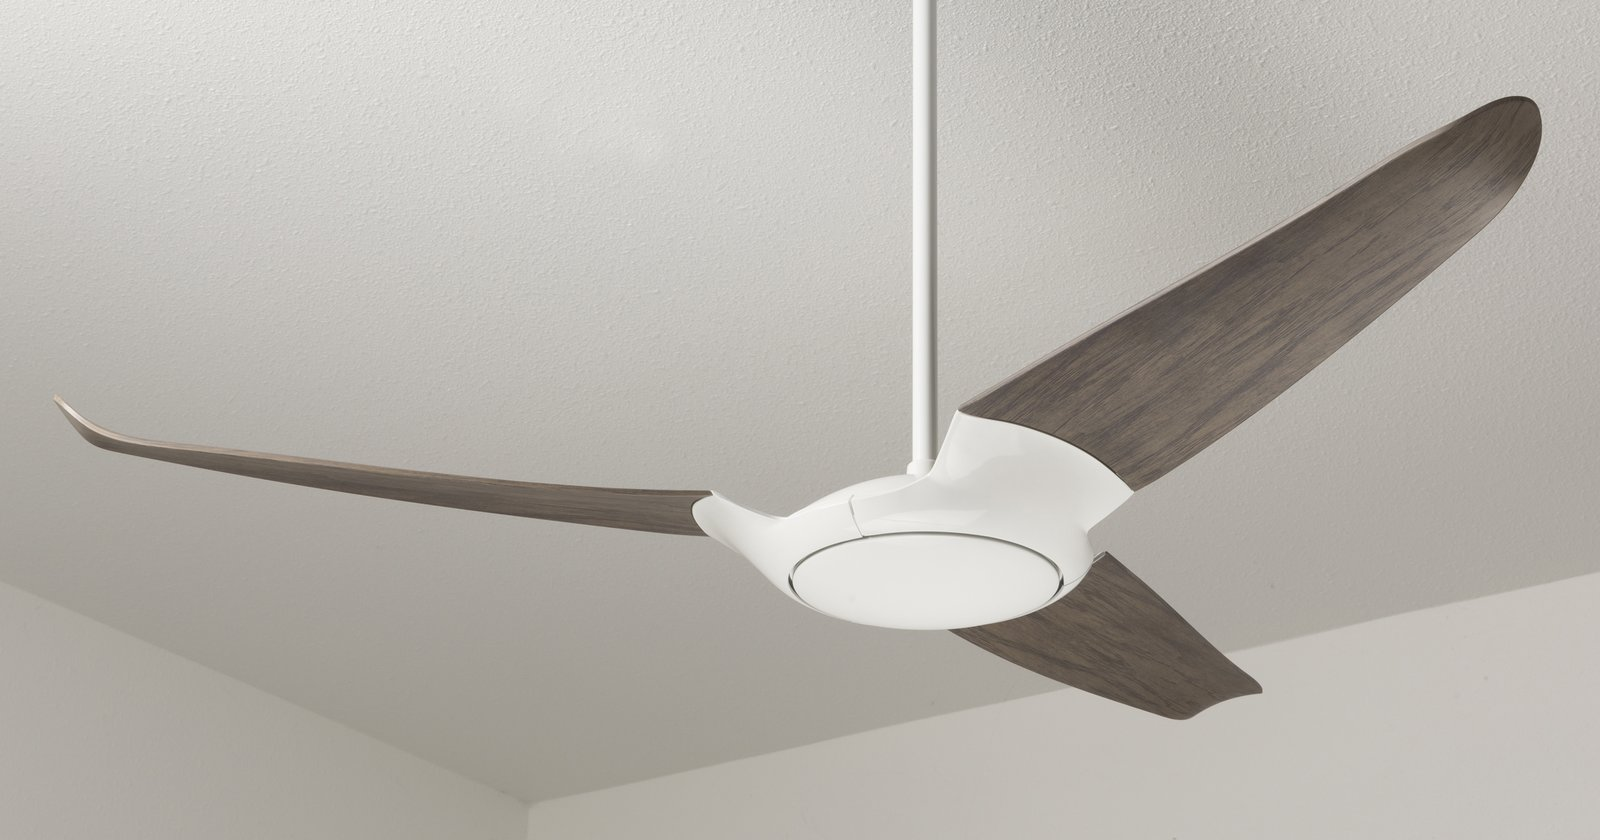 Here, the fan is shown in a three-blade configuration with a dark wood finish. Says Indio da Costa,  Photo 7 of 8 in Taking Flight: A Dose of Brazilian Design Lifts the Ceiling Fan to New Heights